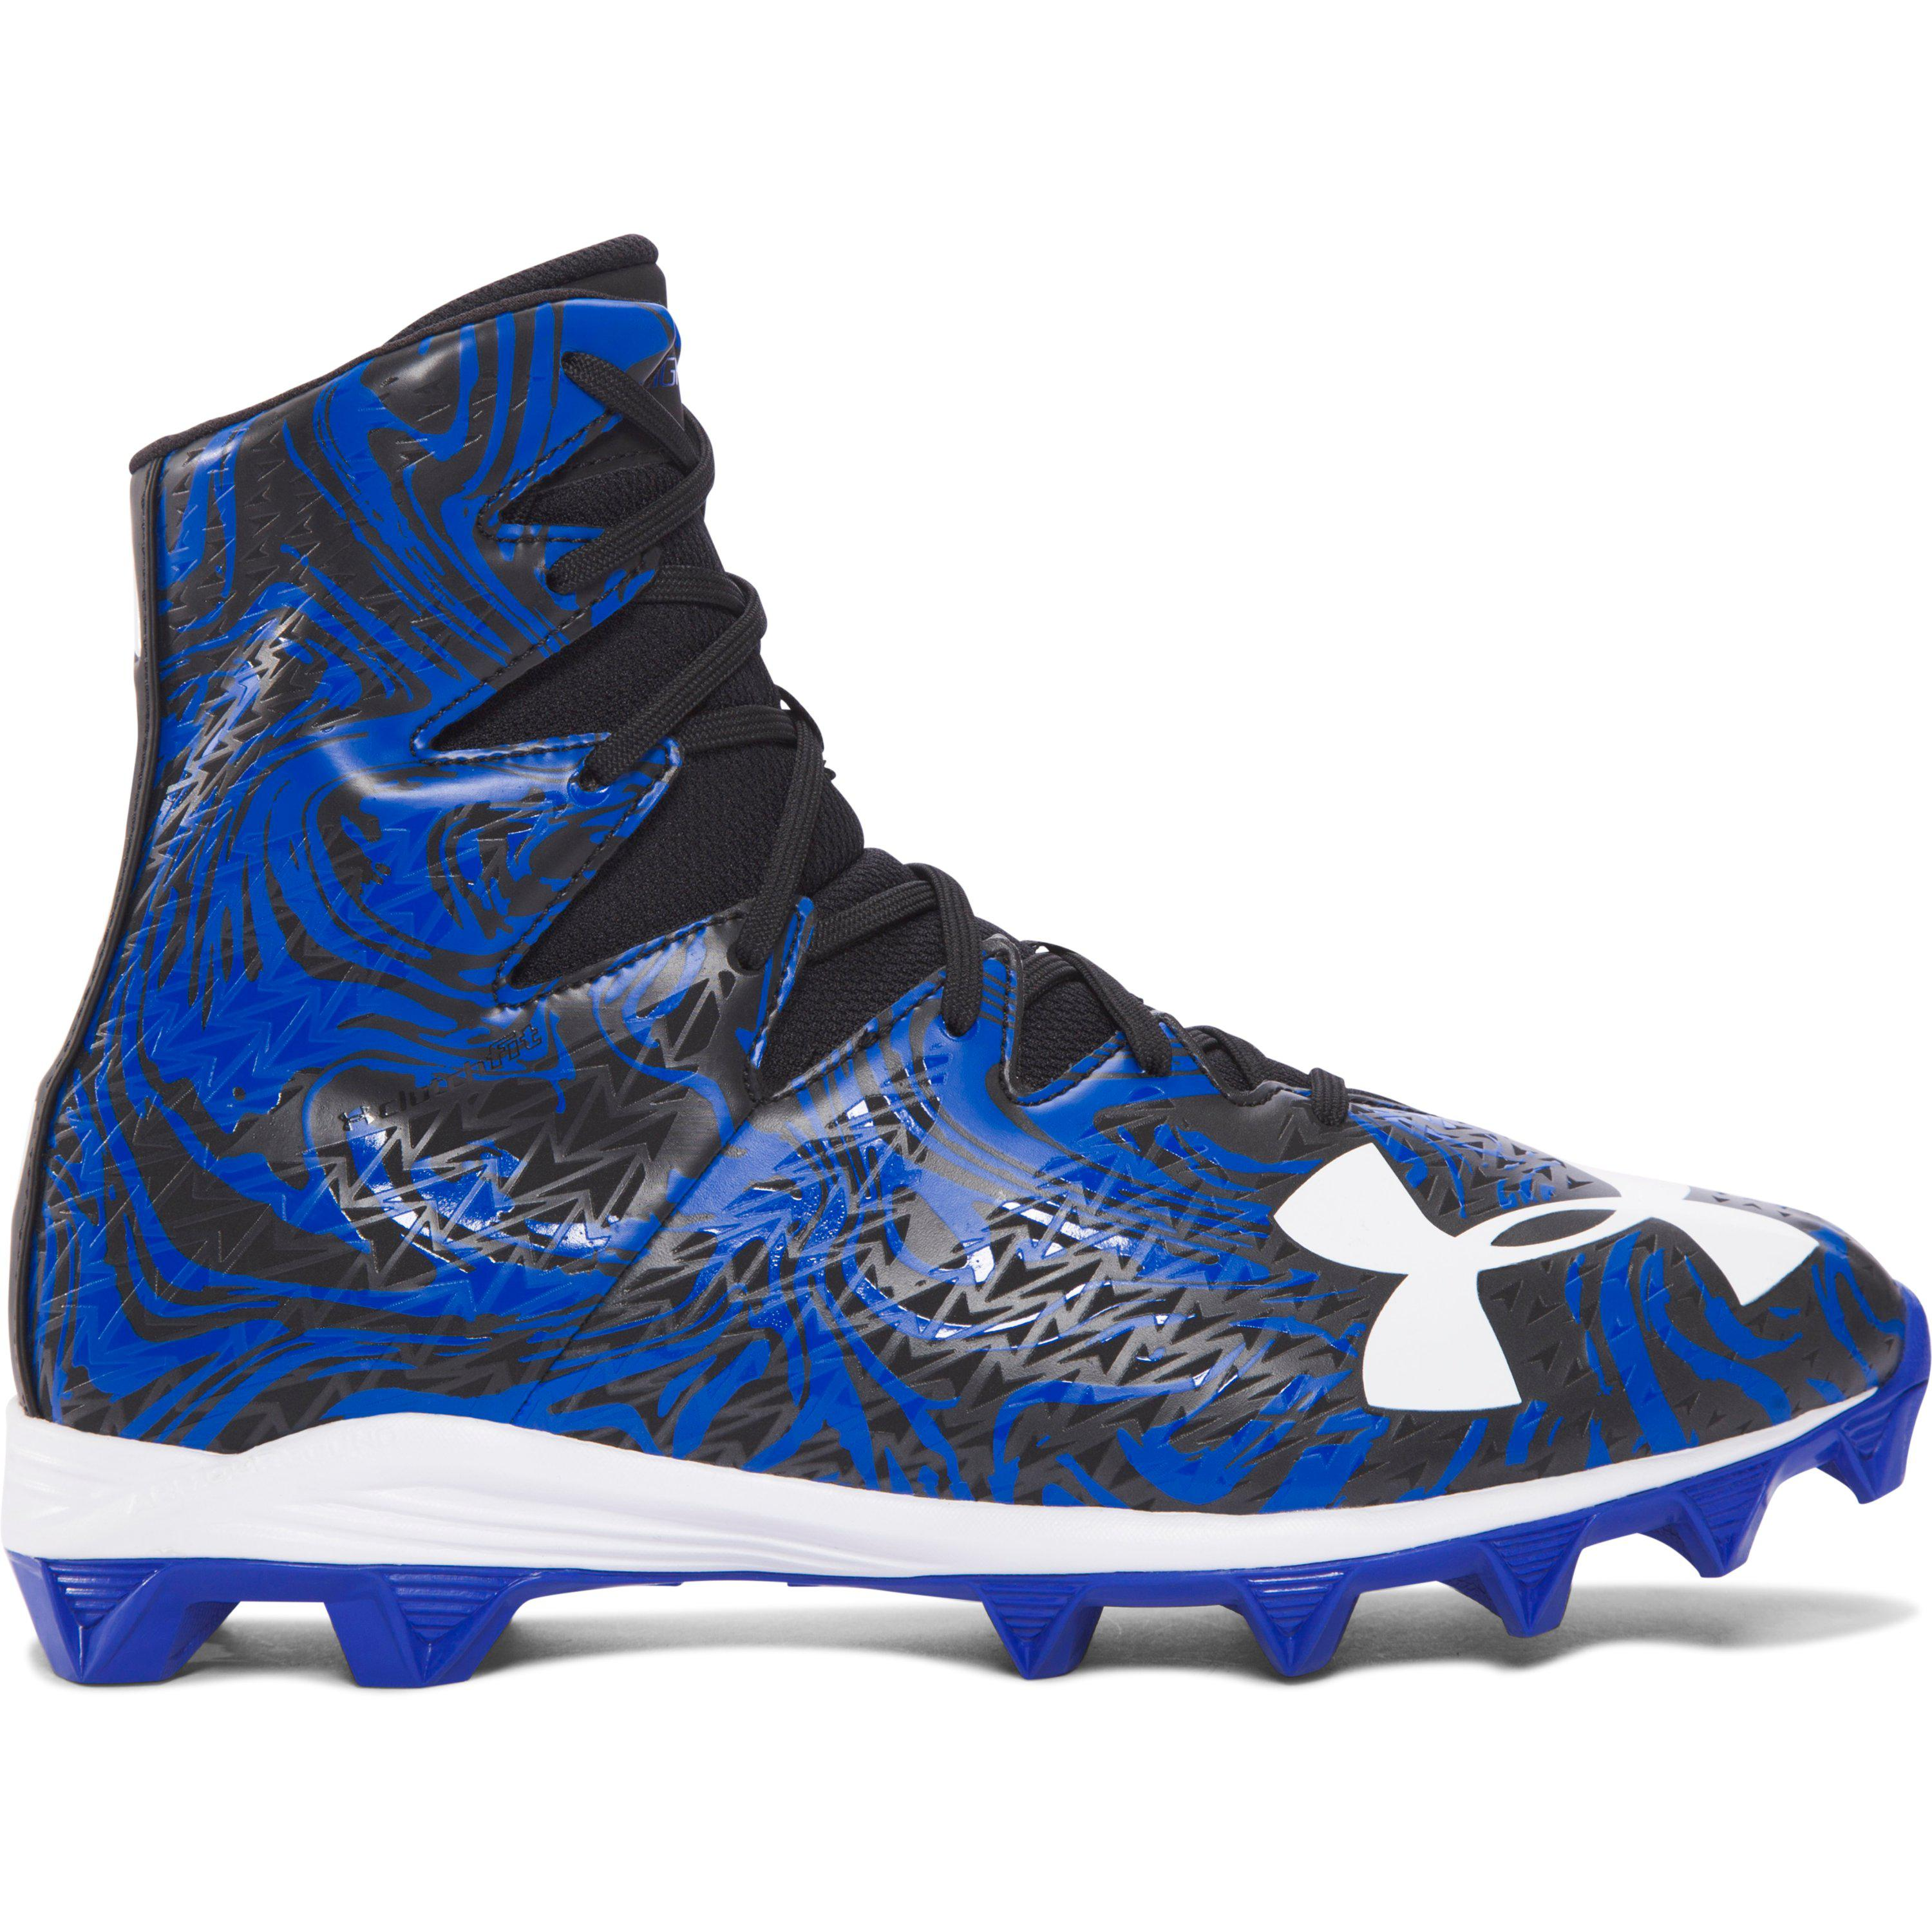 ad4139bac6fb Under Armour Men's Ua Highlight Lux Rubber Molded Football Cleats in ...